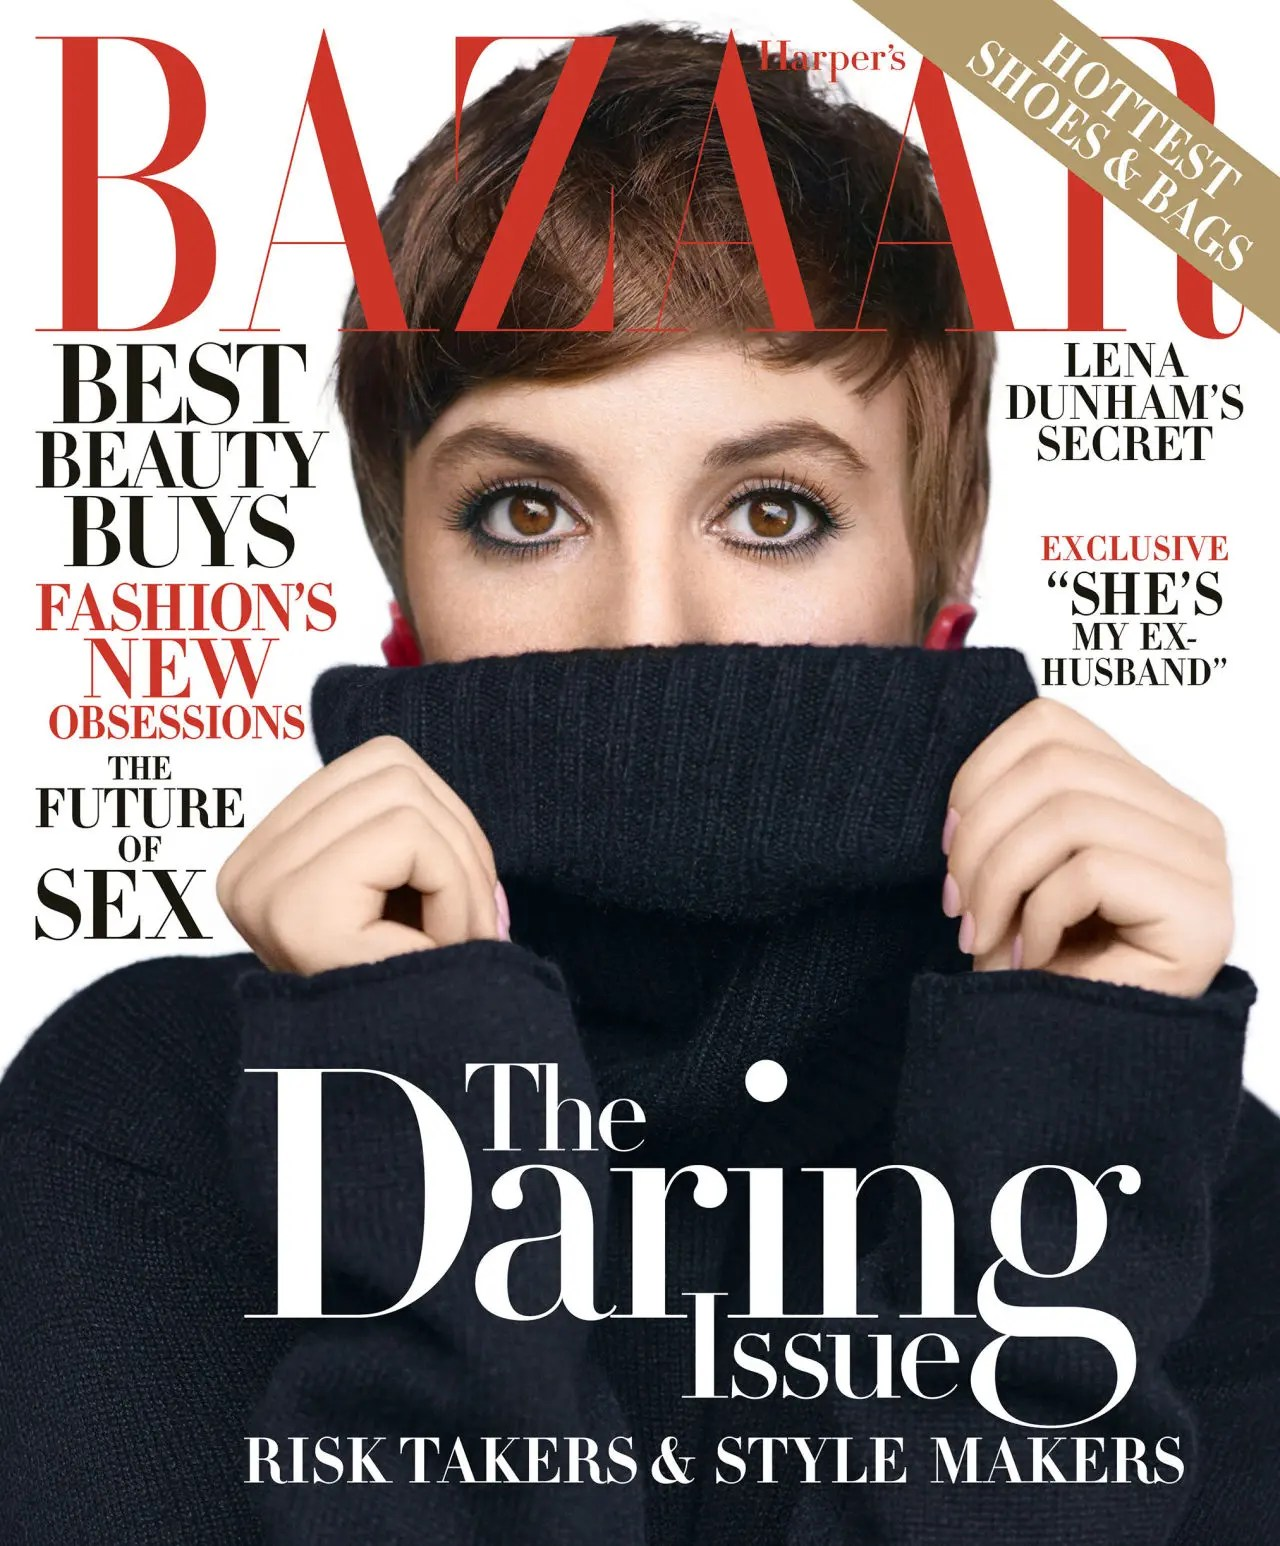 Dr. Goldfarb Featured in Harper's Bazaar Magazine